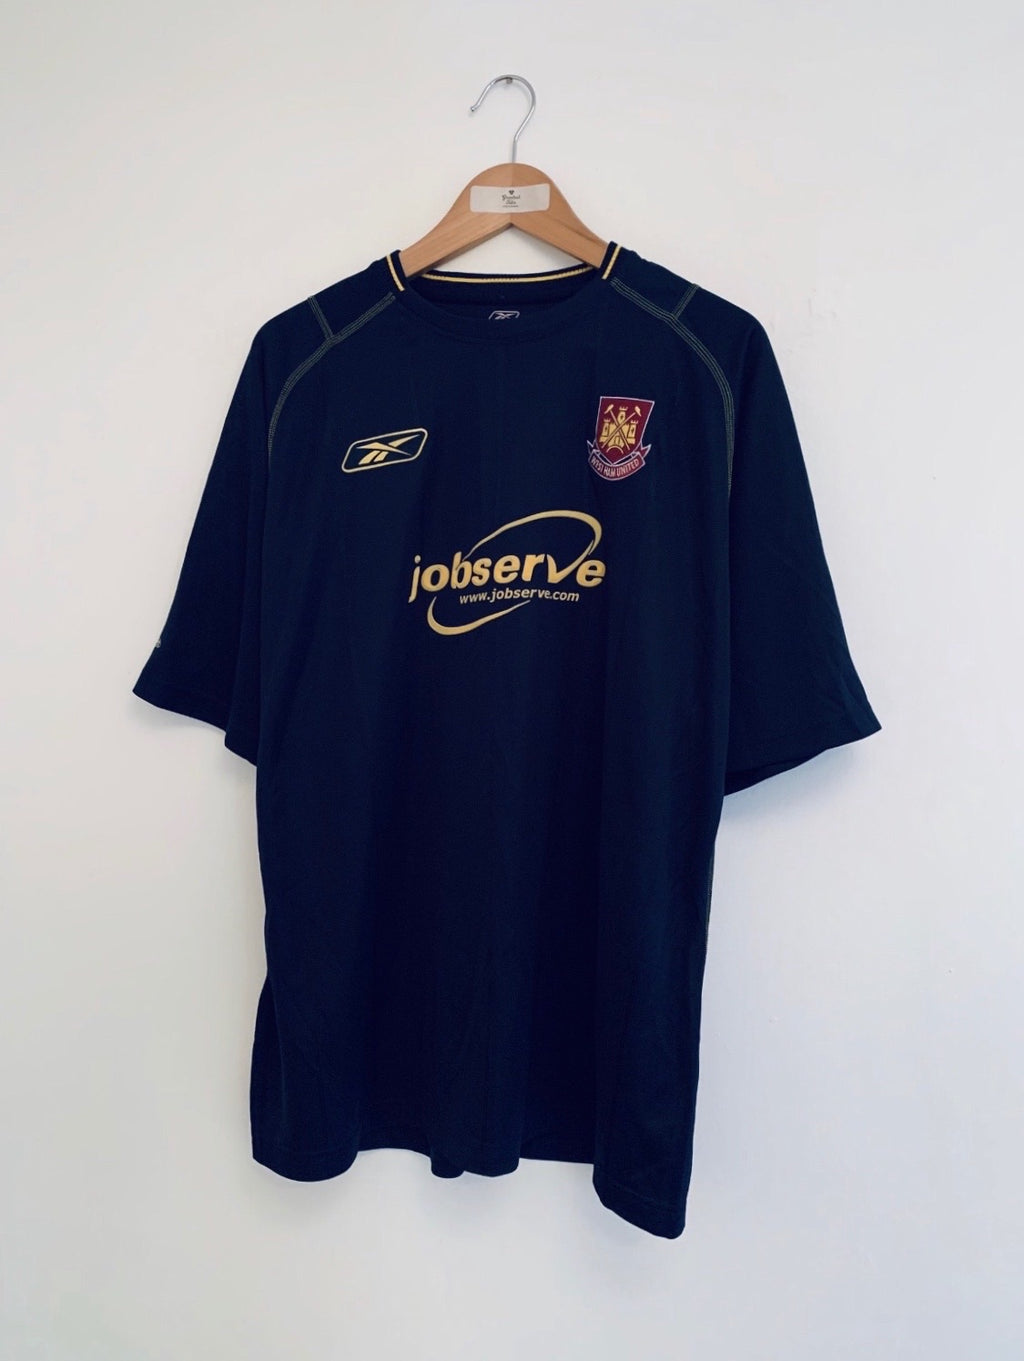 2003/04 West Ham Away Shirt (L) 9/10